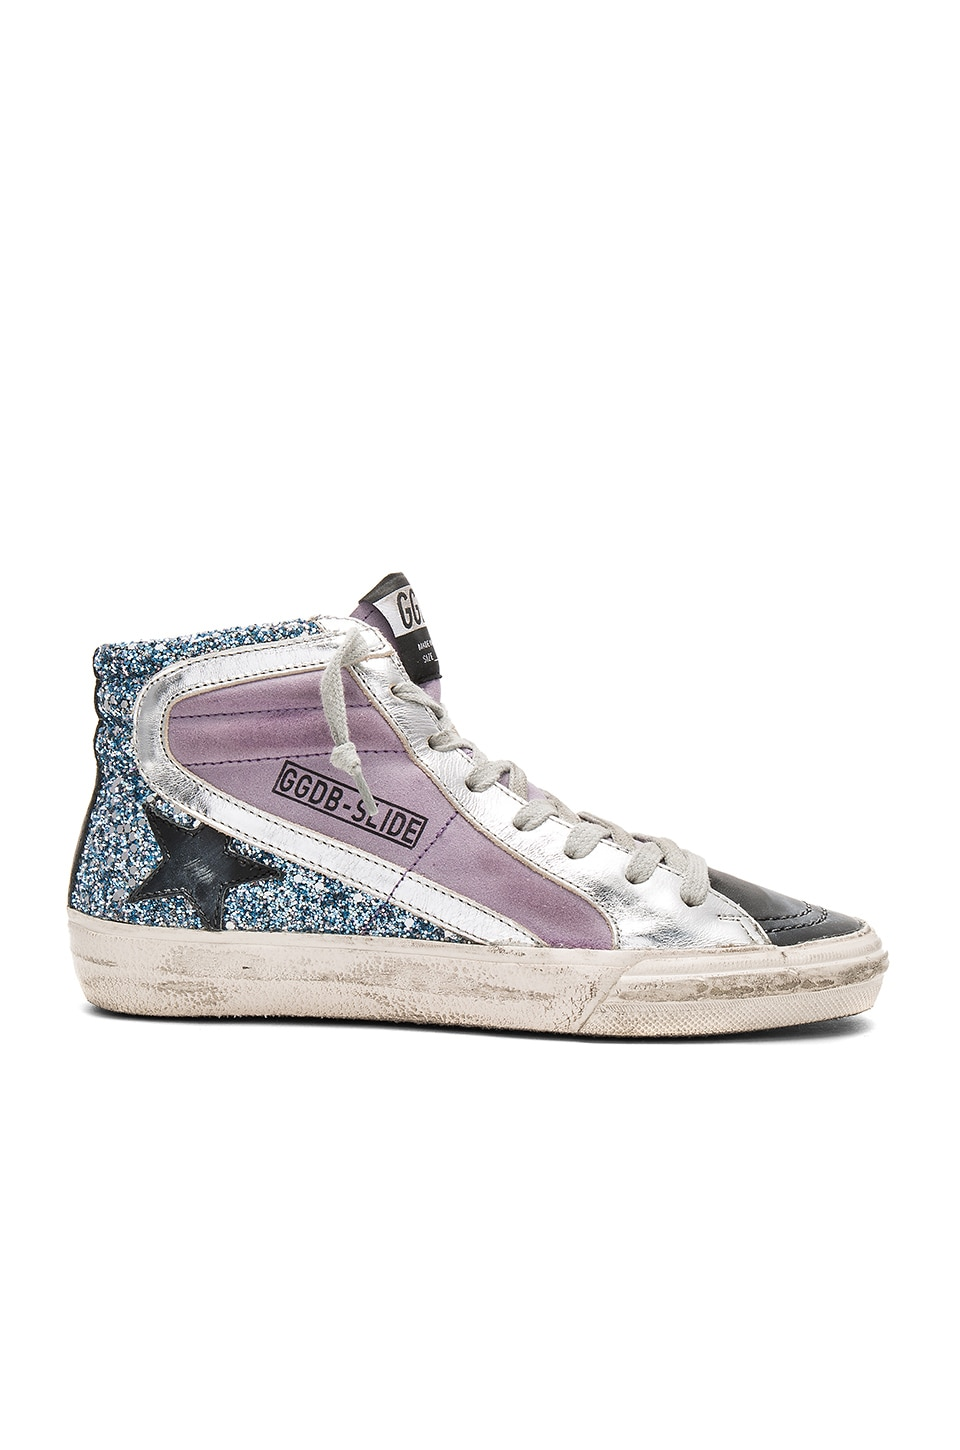 Golden Goose Slide Sneaker in Blue Glitter & Lilac Suede